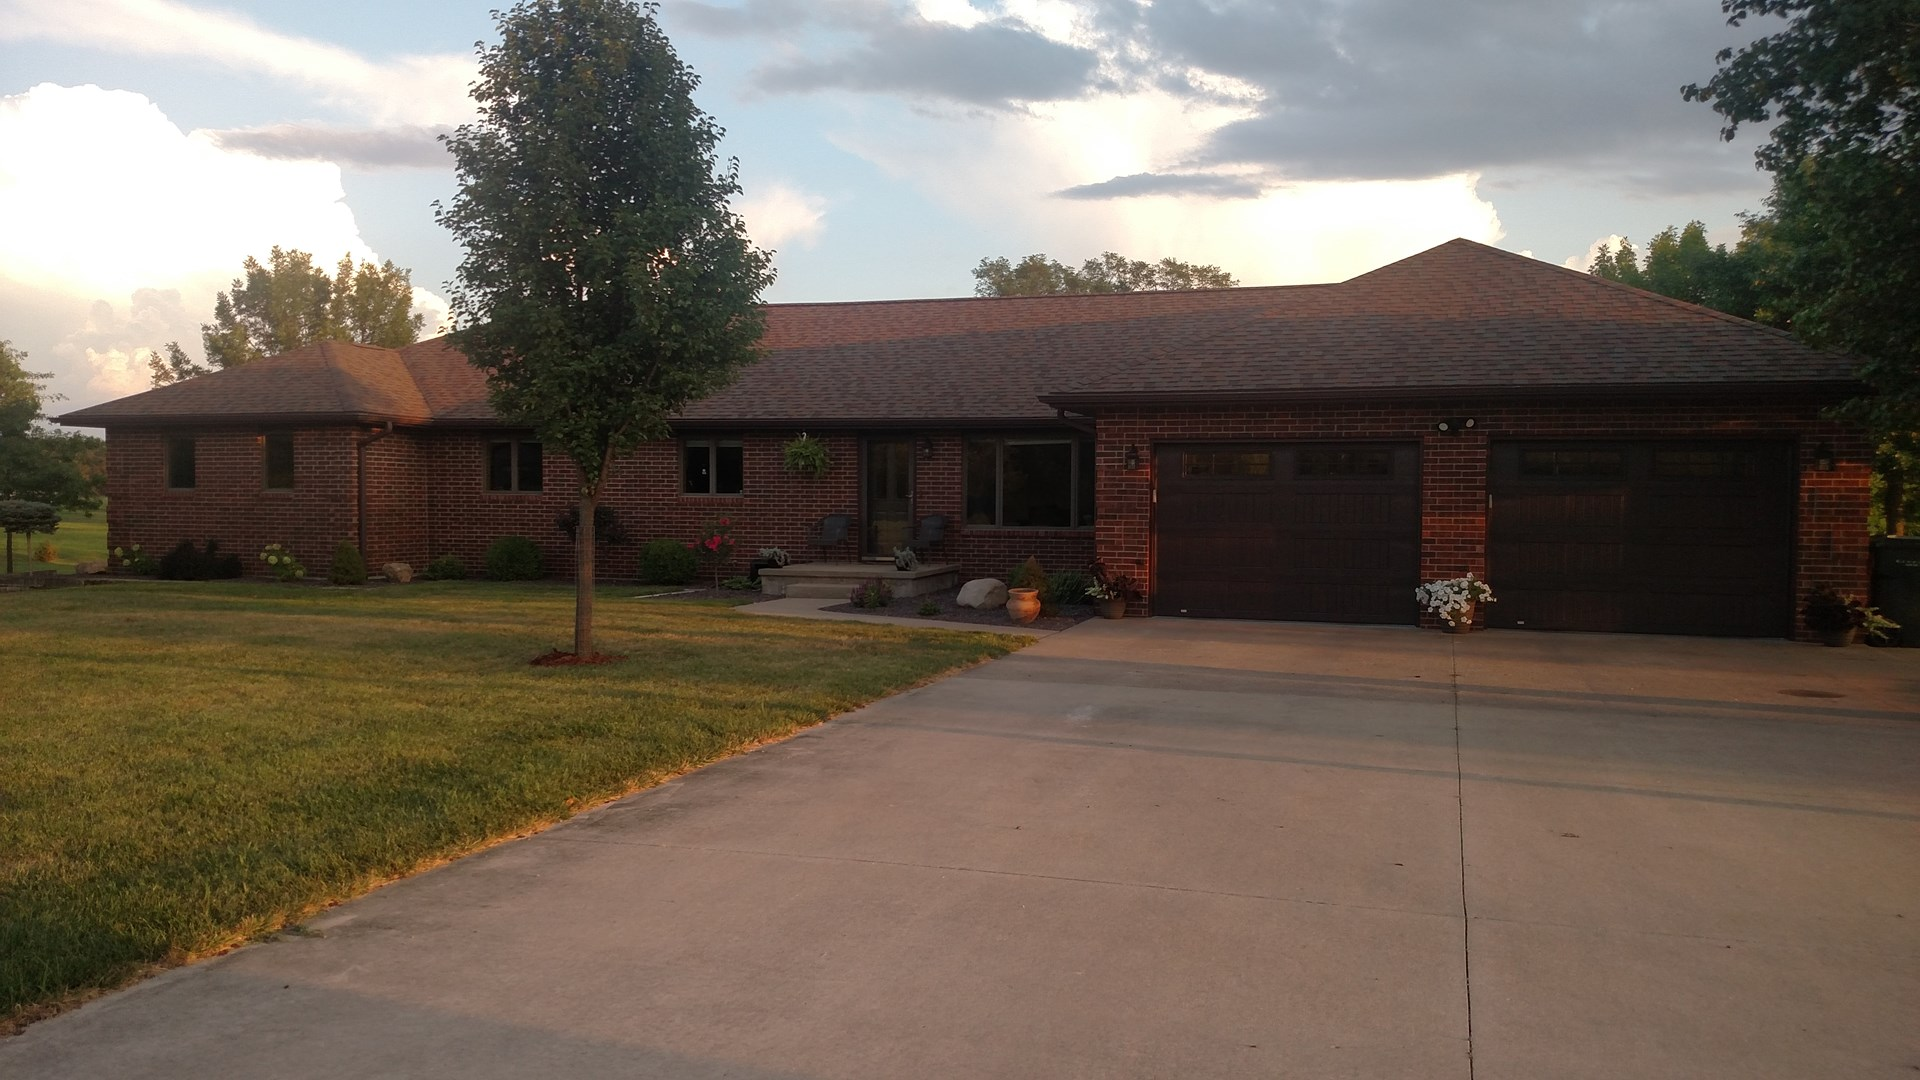 5-Bedroom, 3-Bath Home Near Keokuk, Iowa